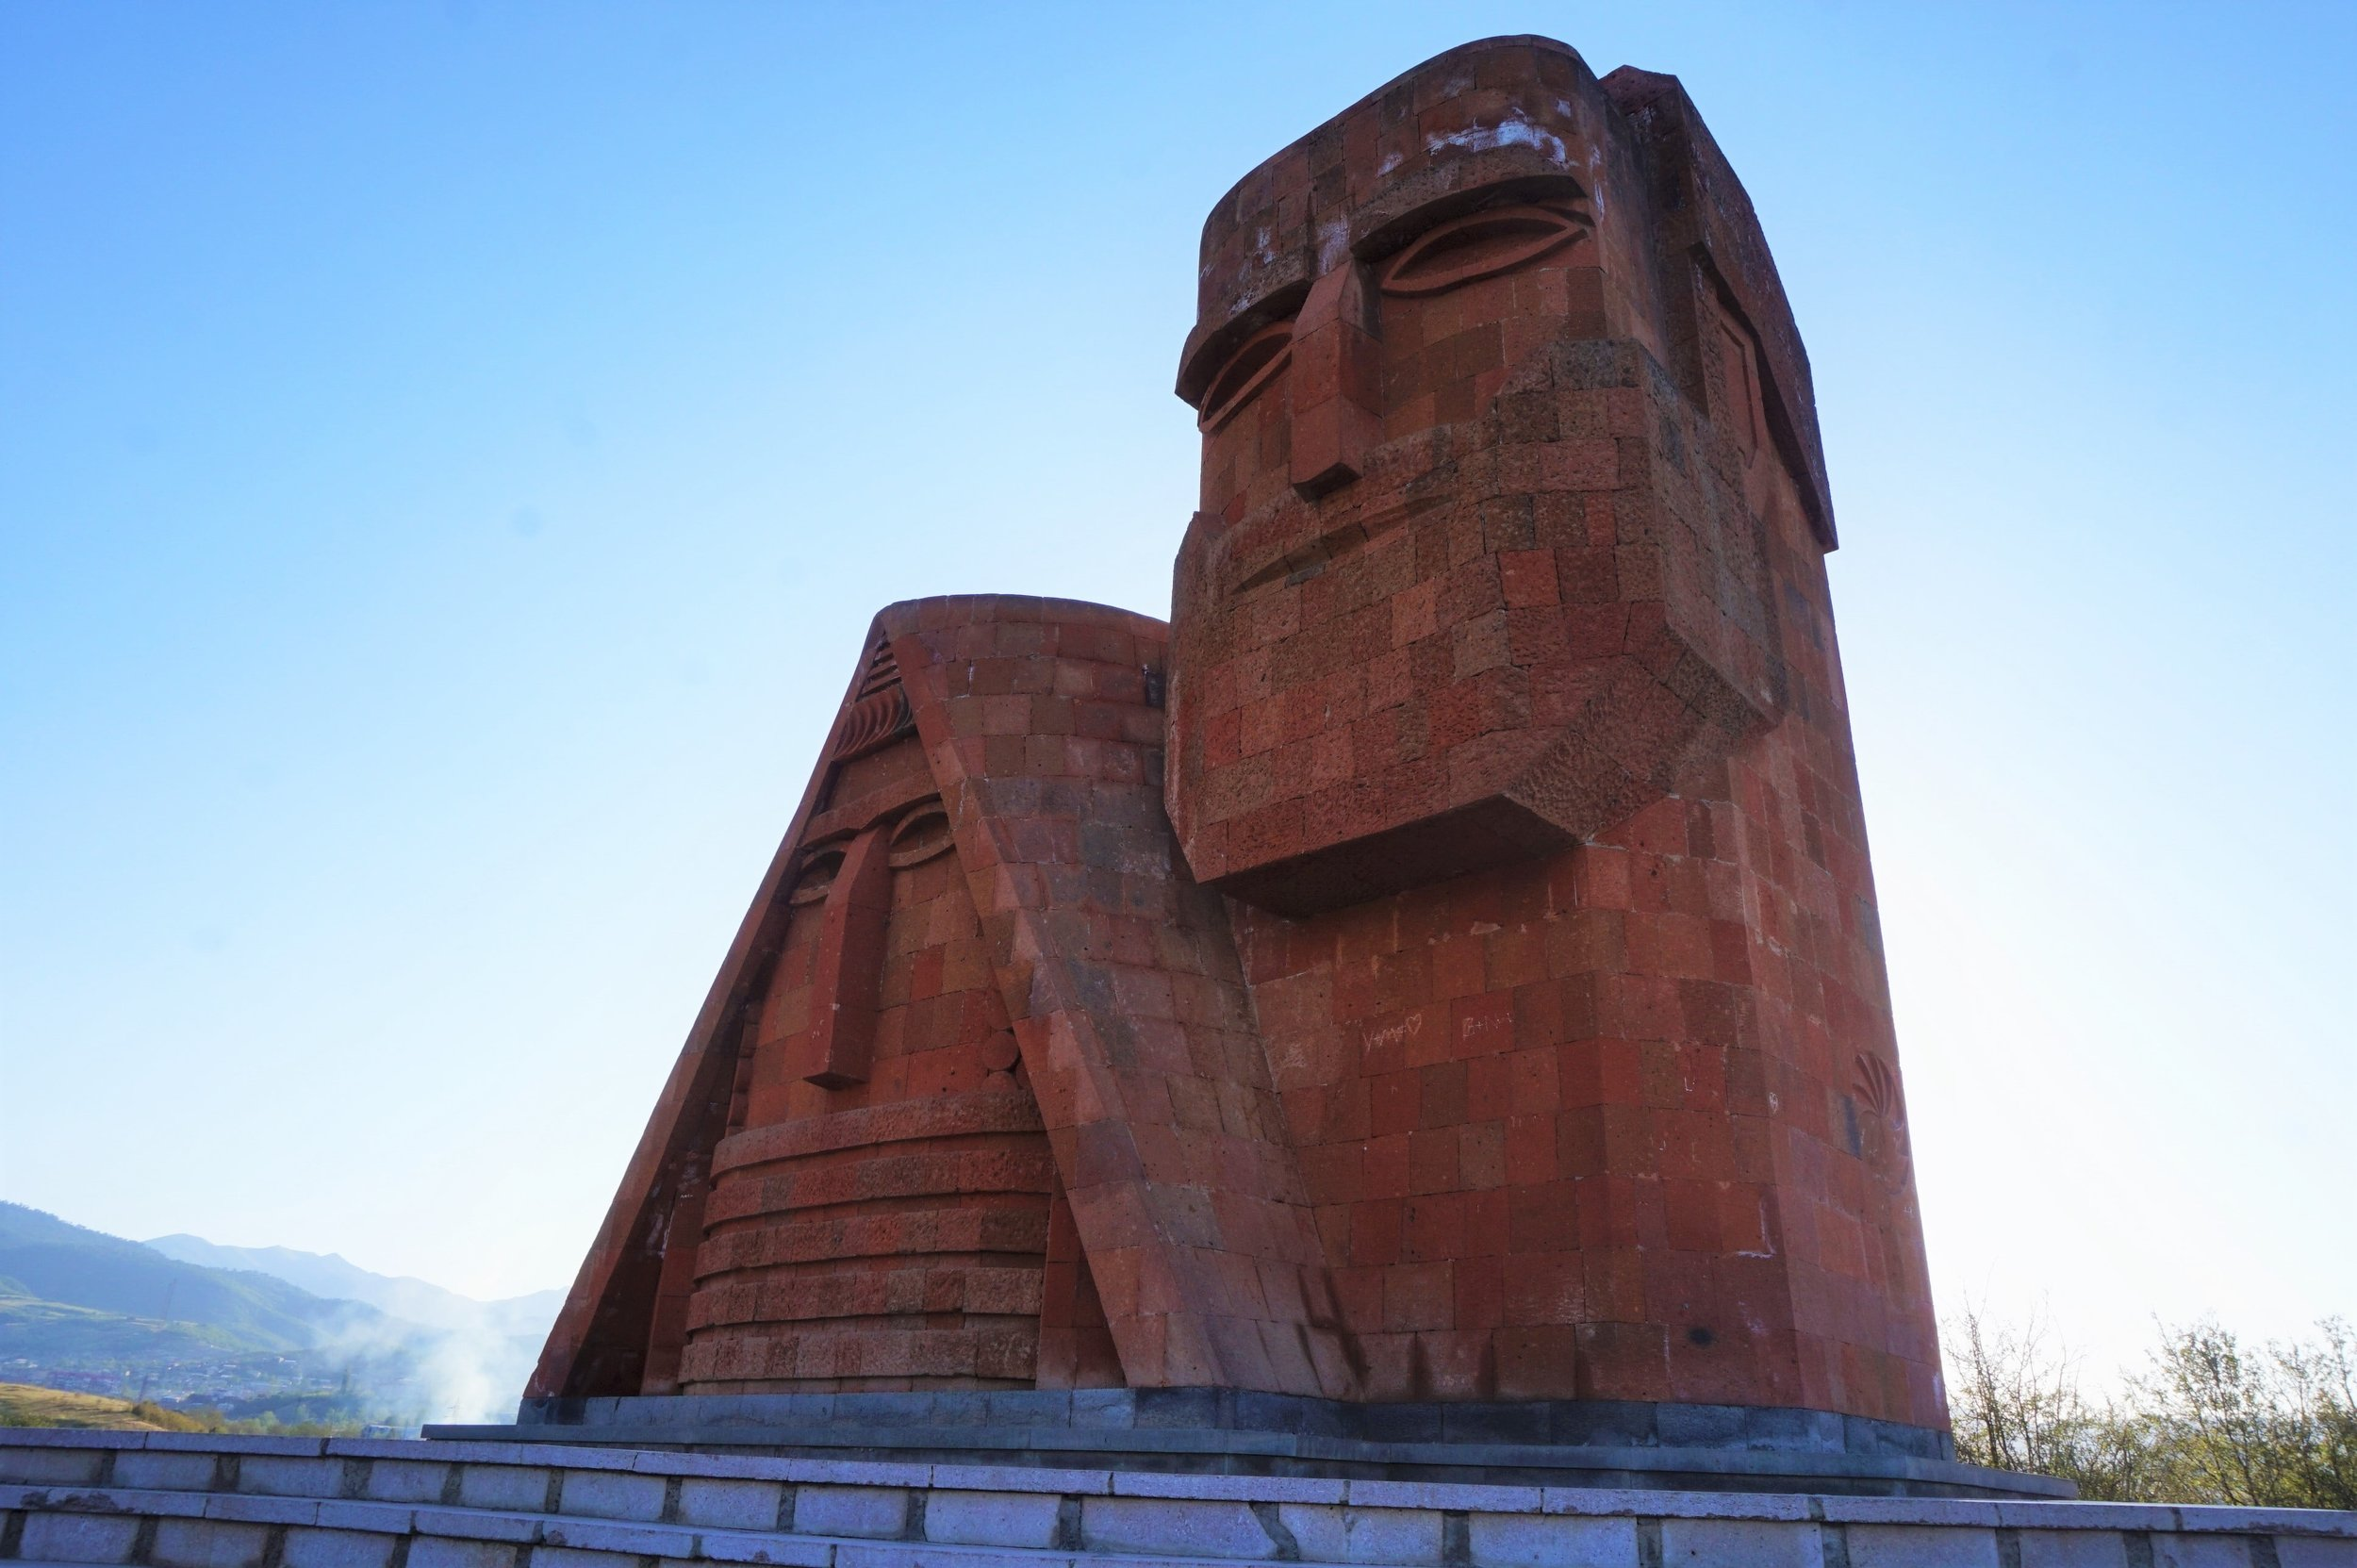 One of the best things to see in Artsakh is the monument We are Our Mountains!